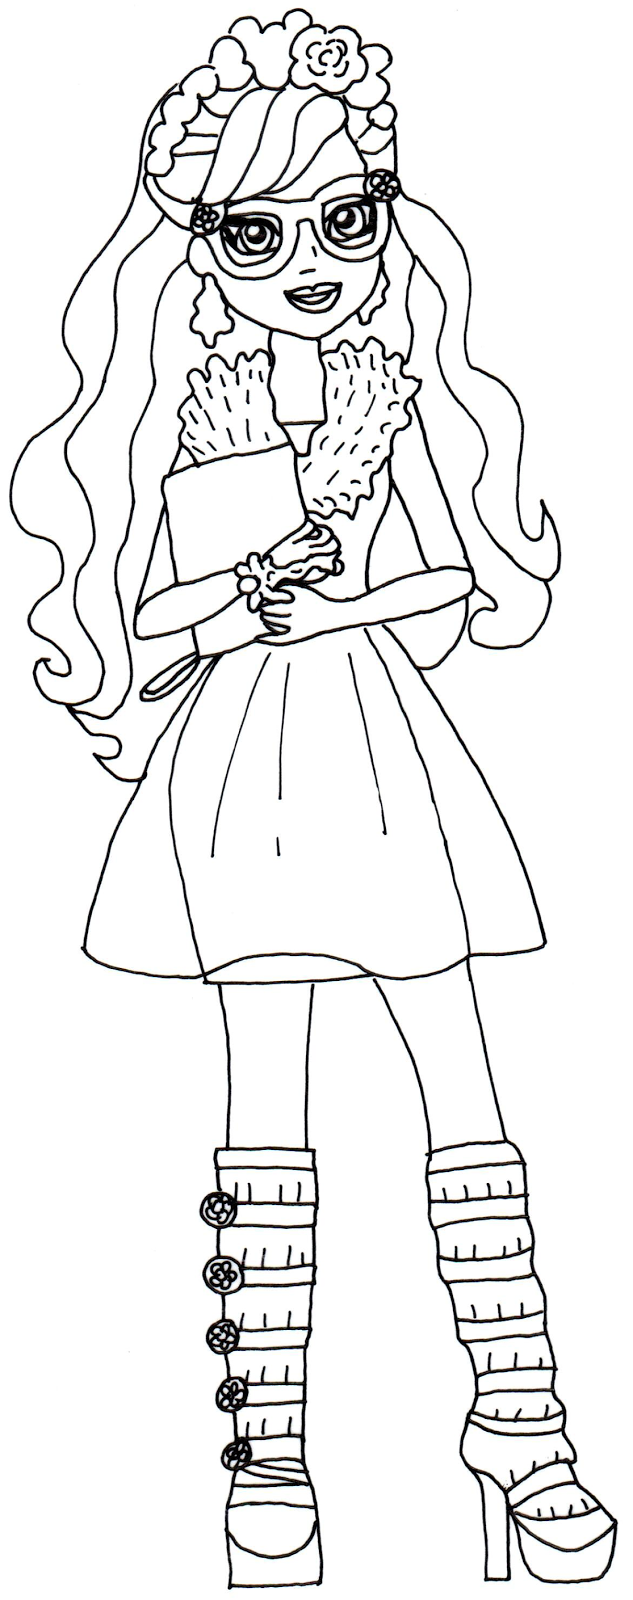 Free Printable Ever After High Coloring Pages Rosabella Beauty Ever After High Coloring Page